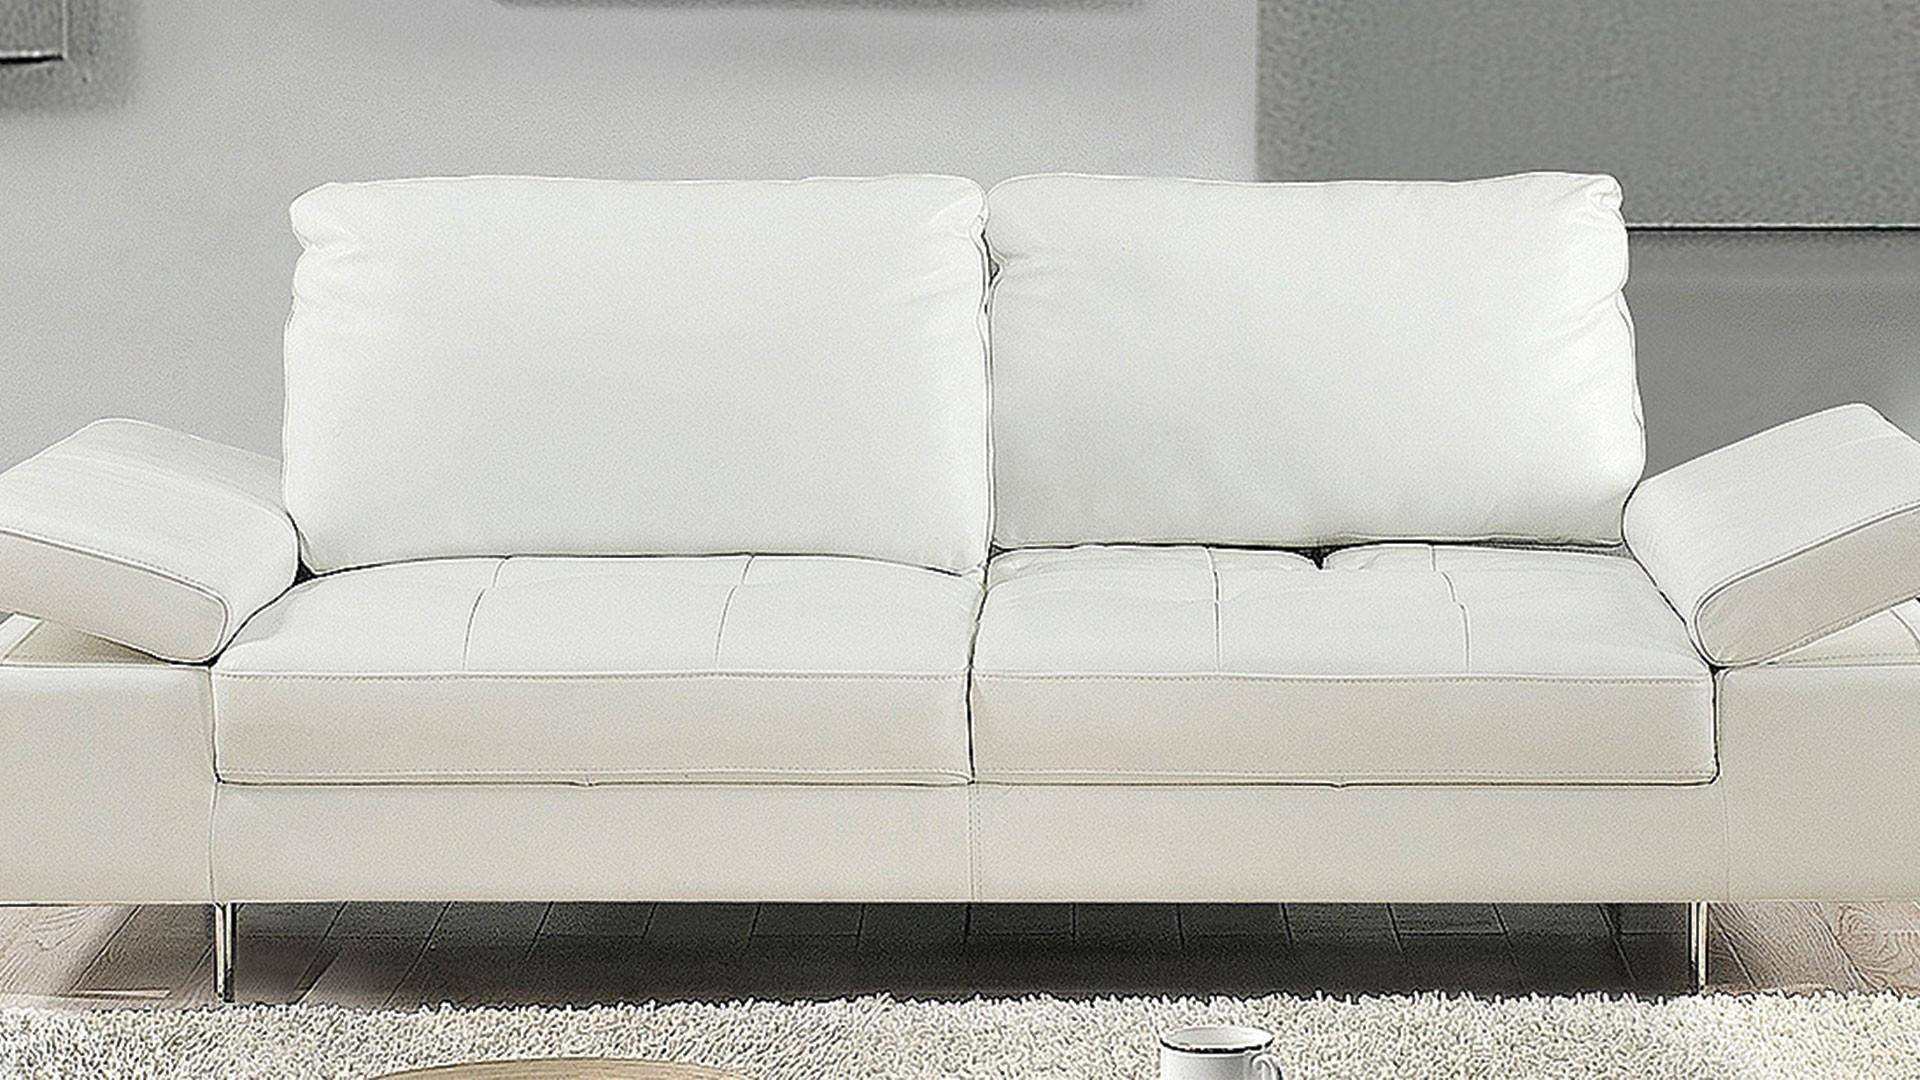 Made In Italy Leather Luxury Contemporary Furniture Set: At Home USA Gia White Luxury Italian Leather Ultra Modern